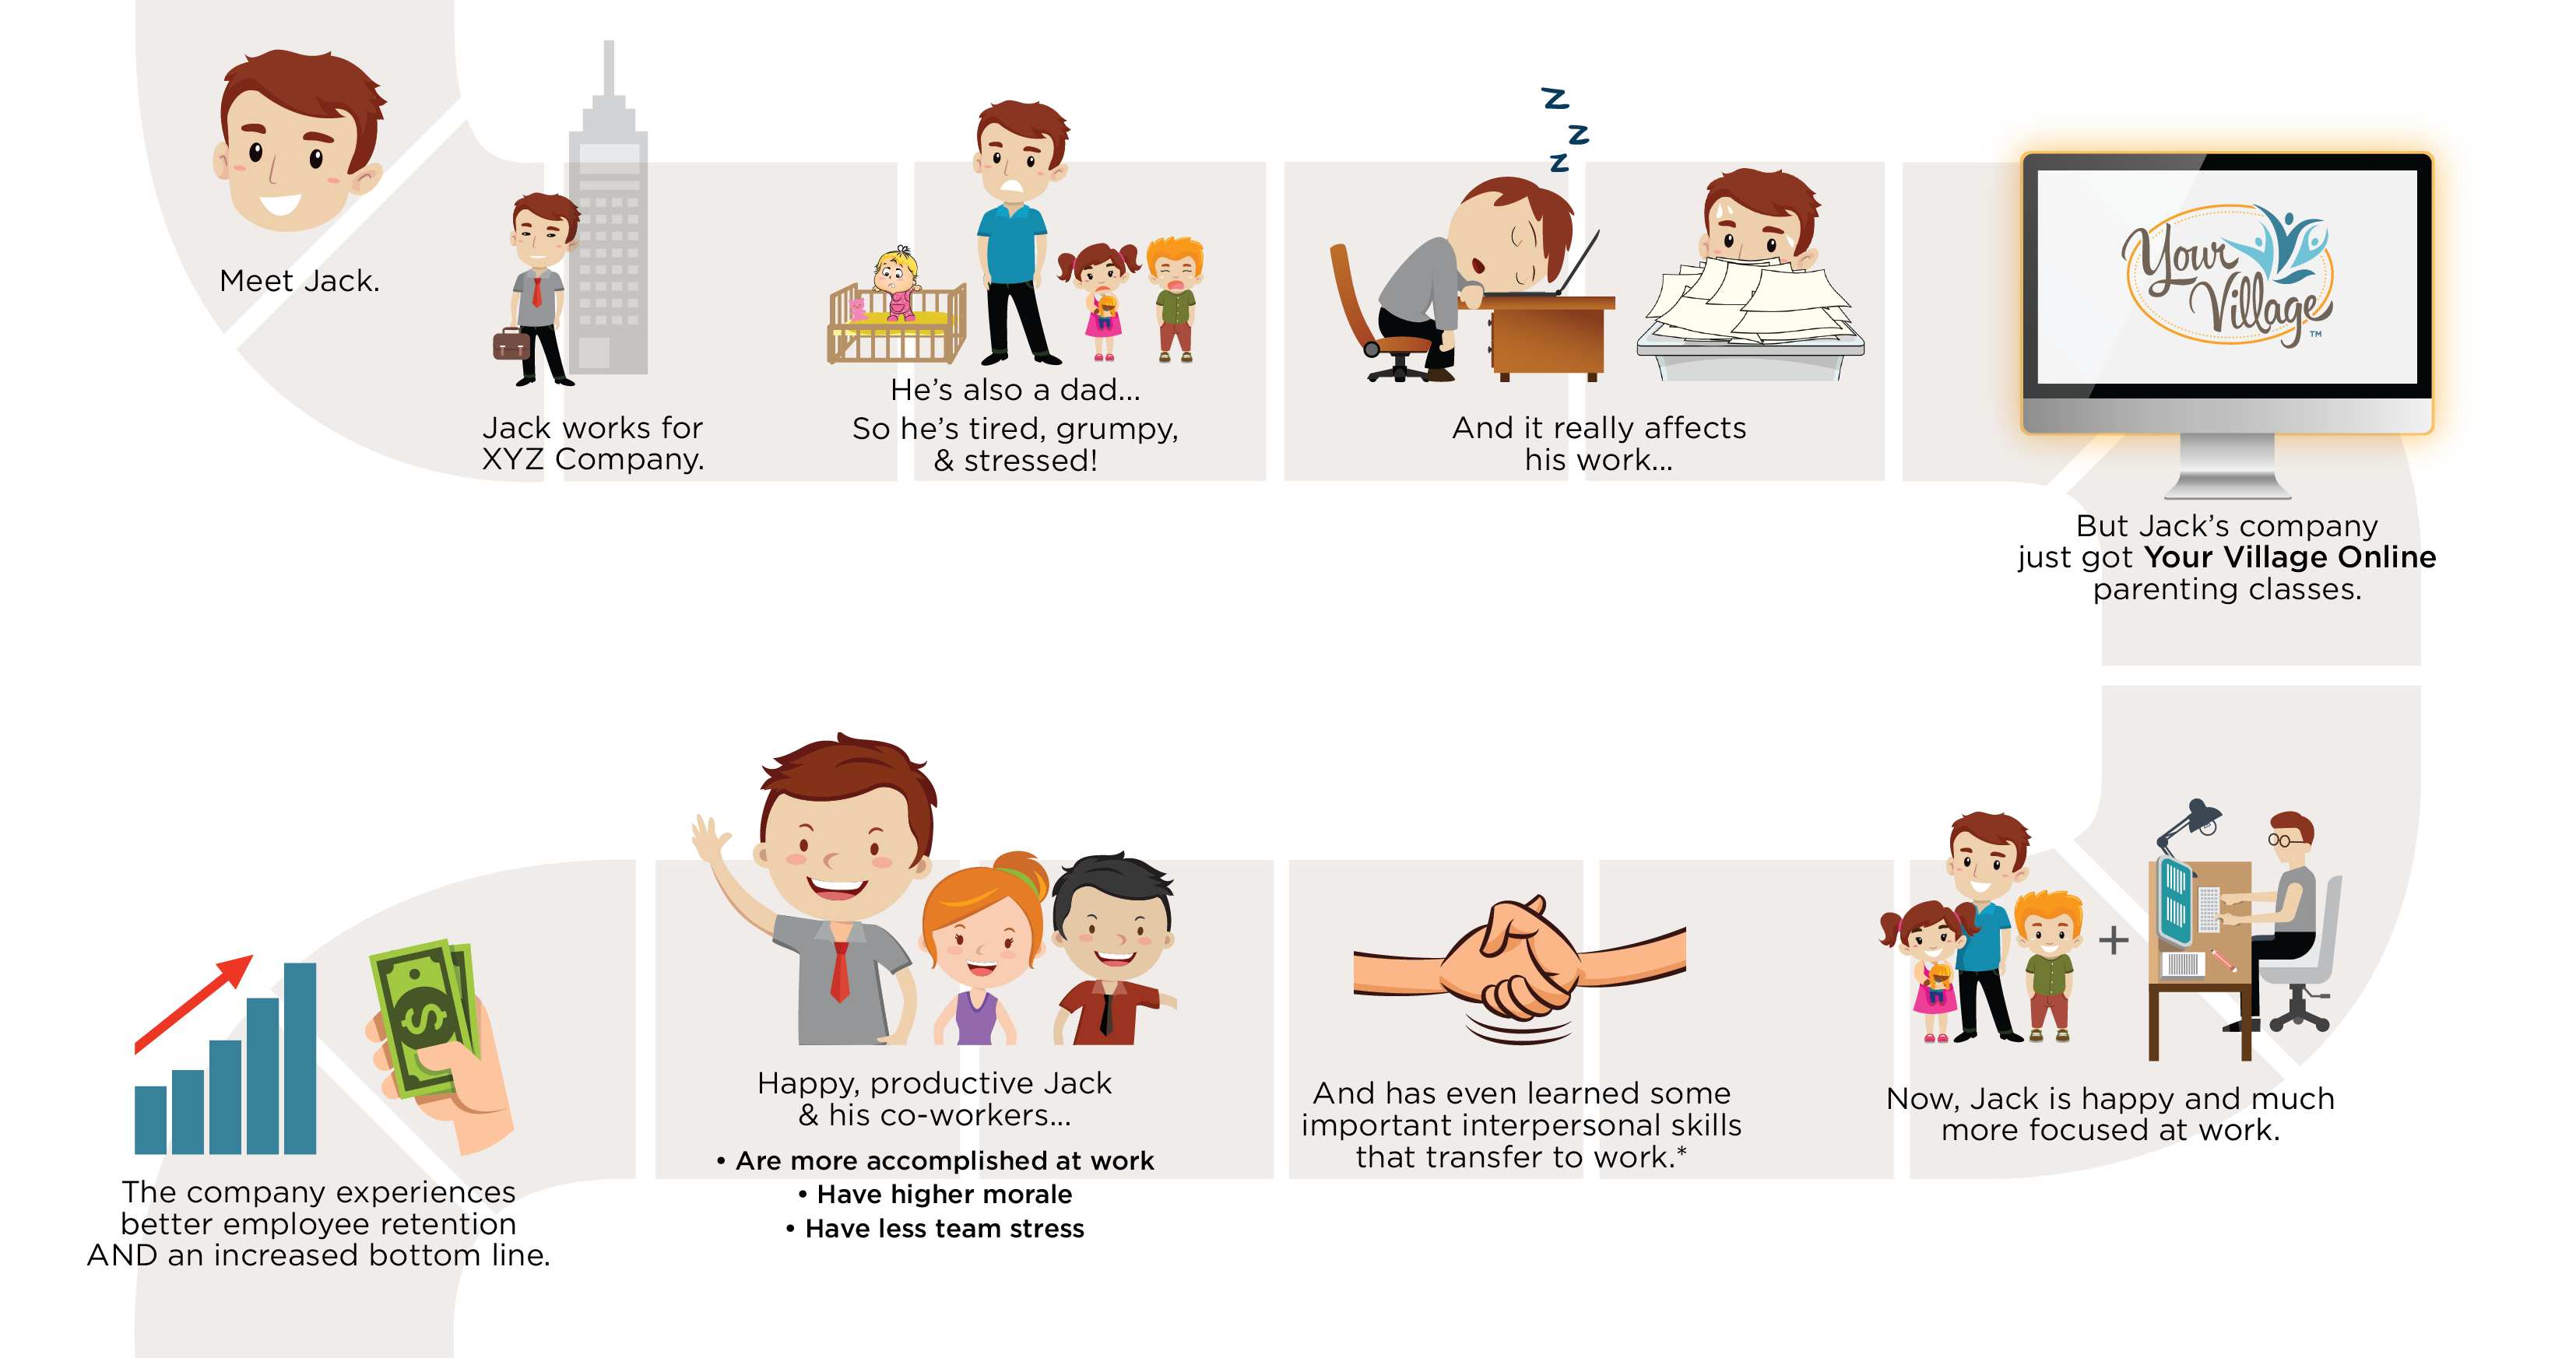 Employee clipart morale. Updated jack your village